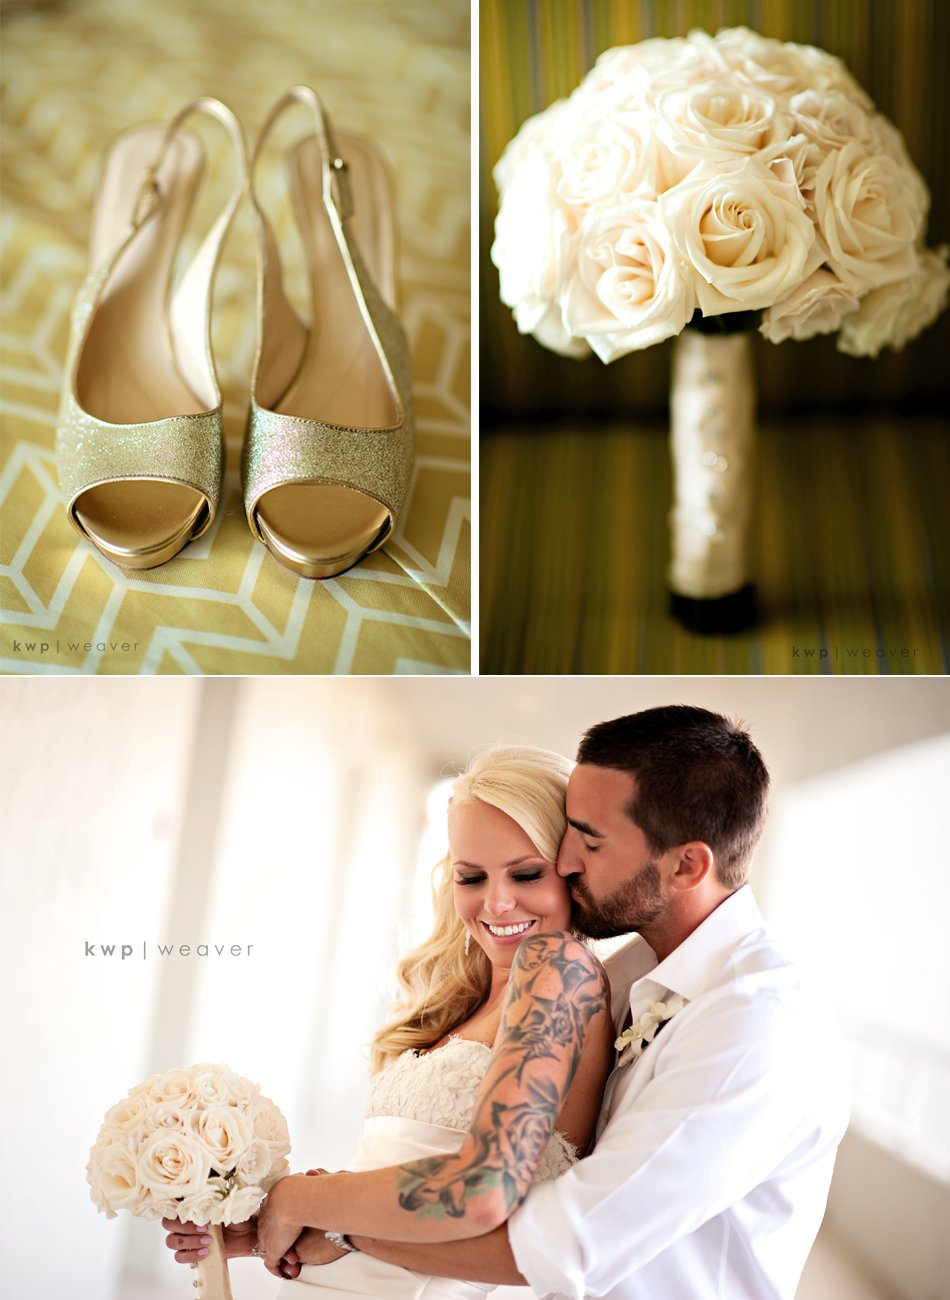 Glamourous Tattooed Bride Wears Gold Peep Toe Wedding Shoes Holds Ivory Bridal Bouquet Of Roses